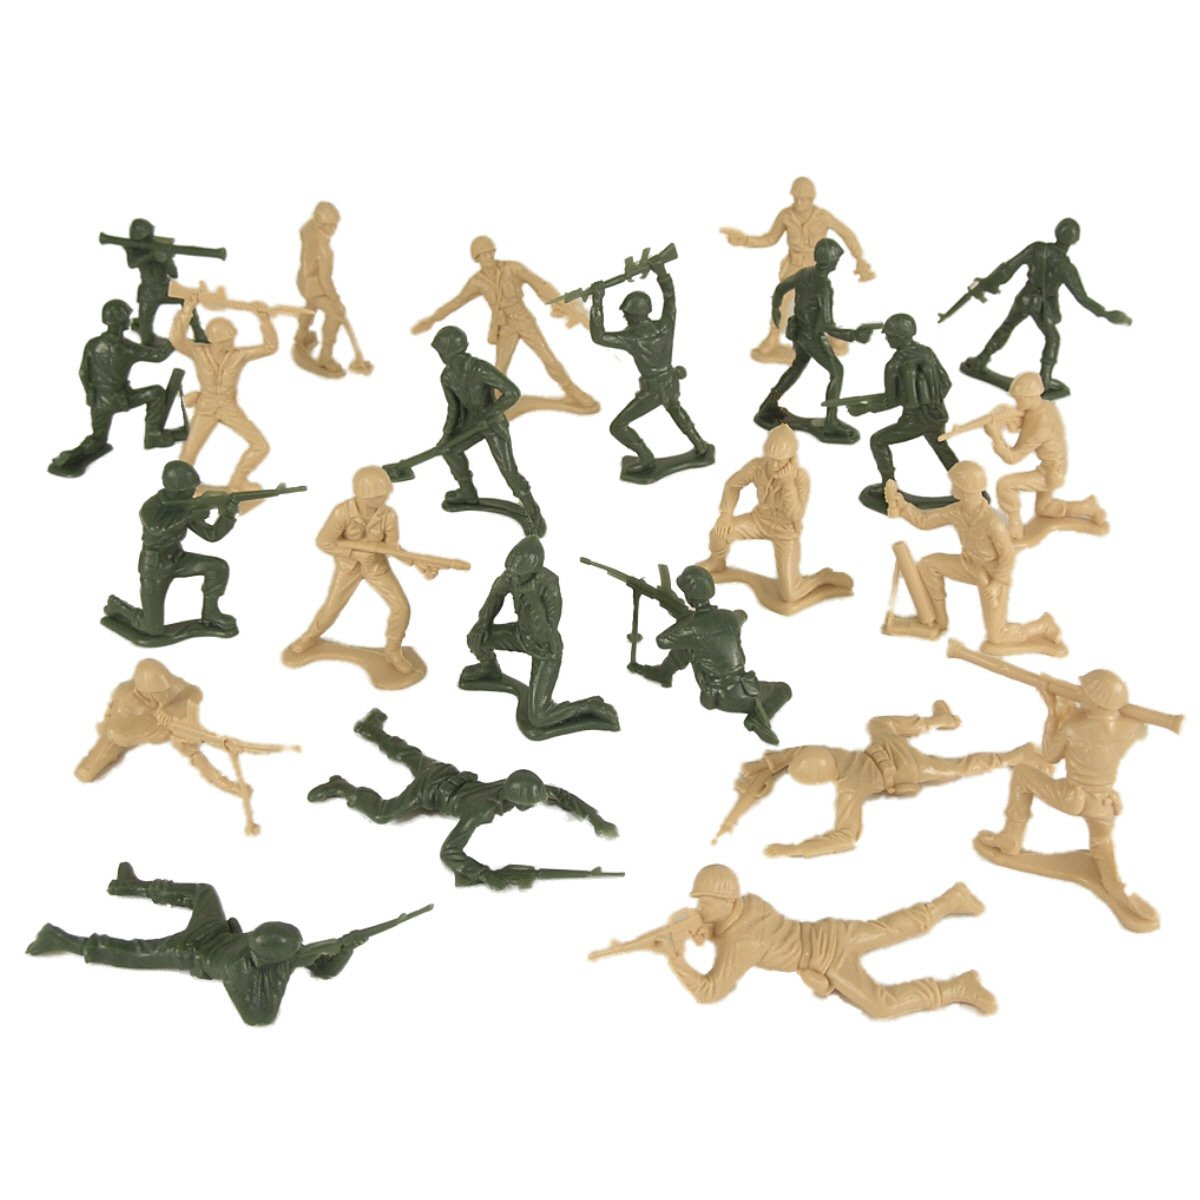 Galleon Timmee Plastic Army Men Green Vs Tan 100pc Toy